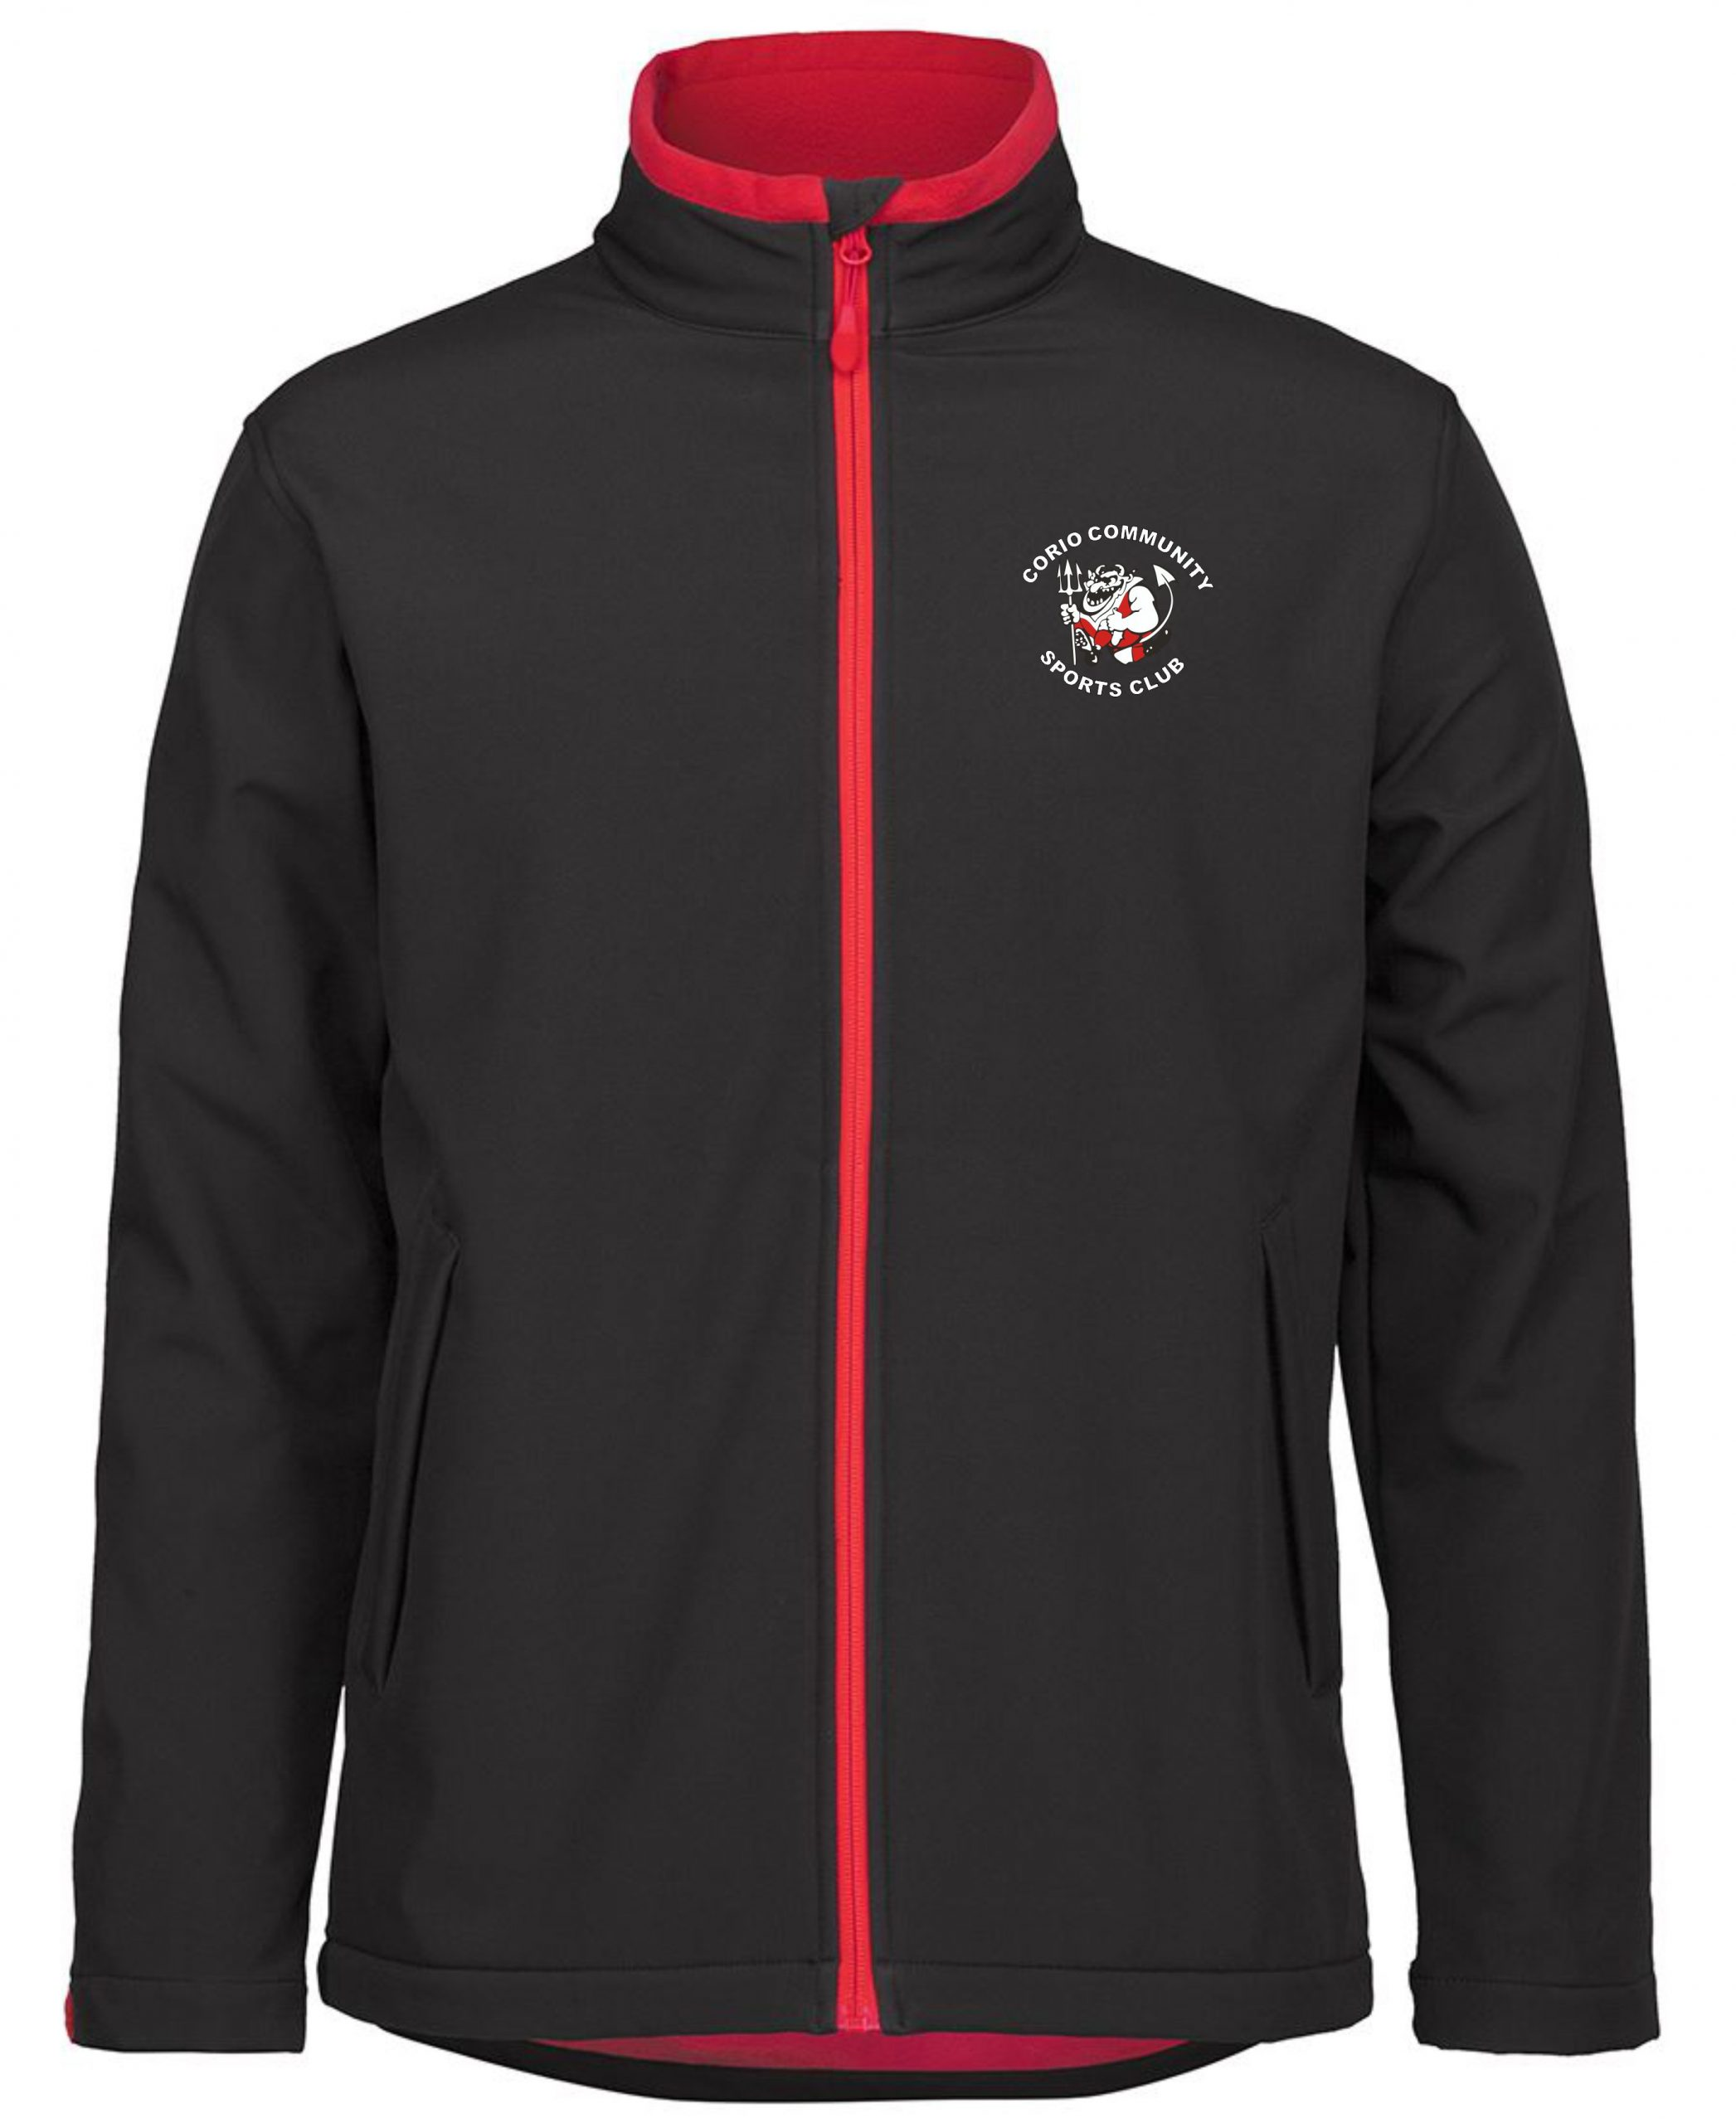 Soft Shell Jacket in Black/Red